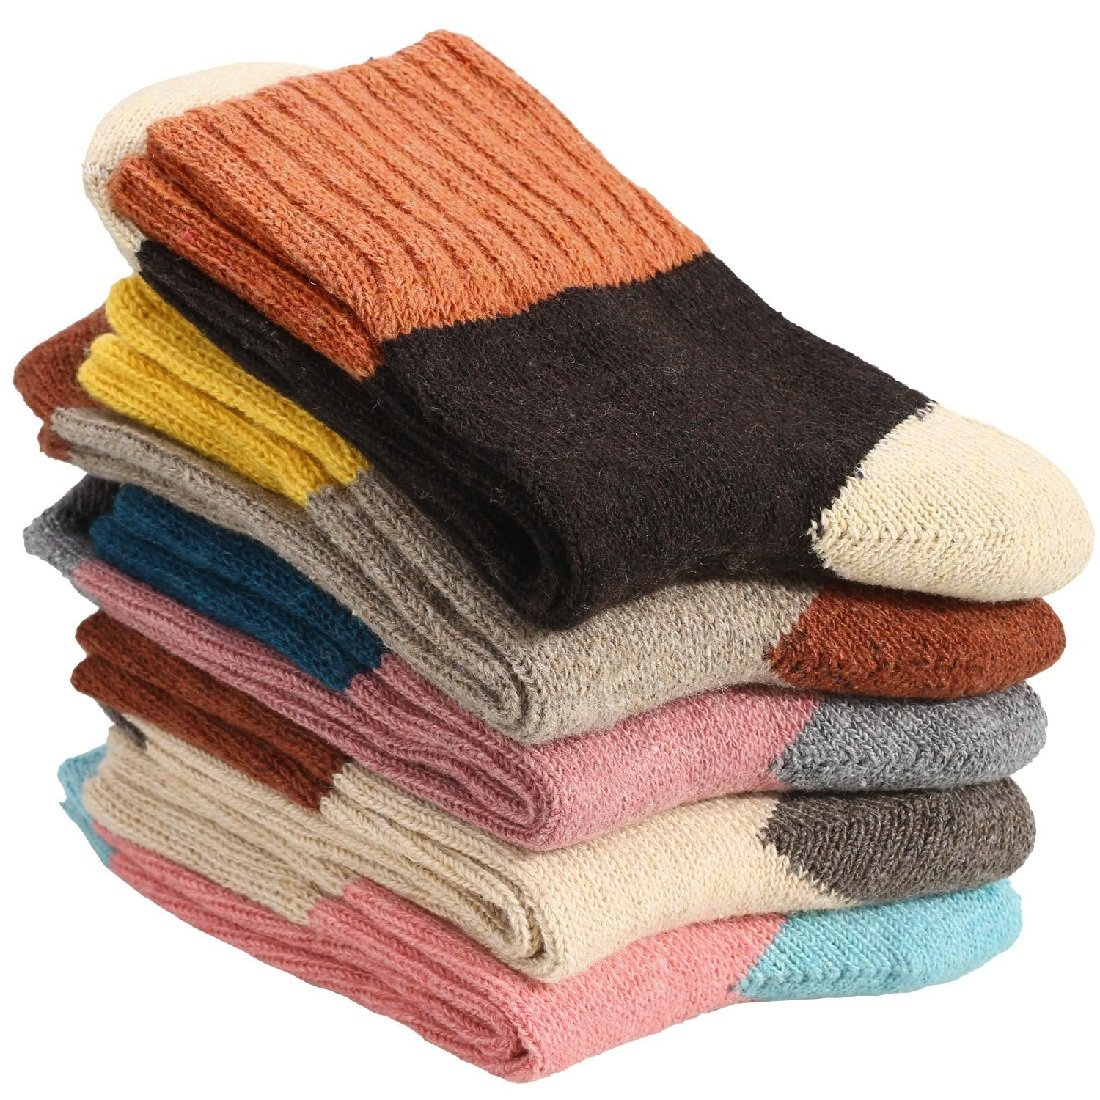 Women Vintage Style Thick Knitting Warm Winter Crew Socks 5 Pairs (Fight color)